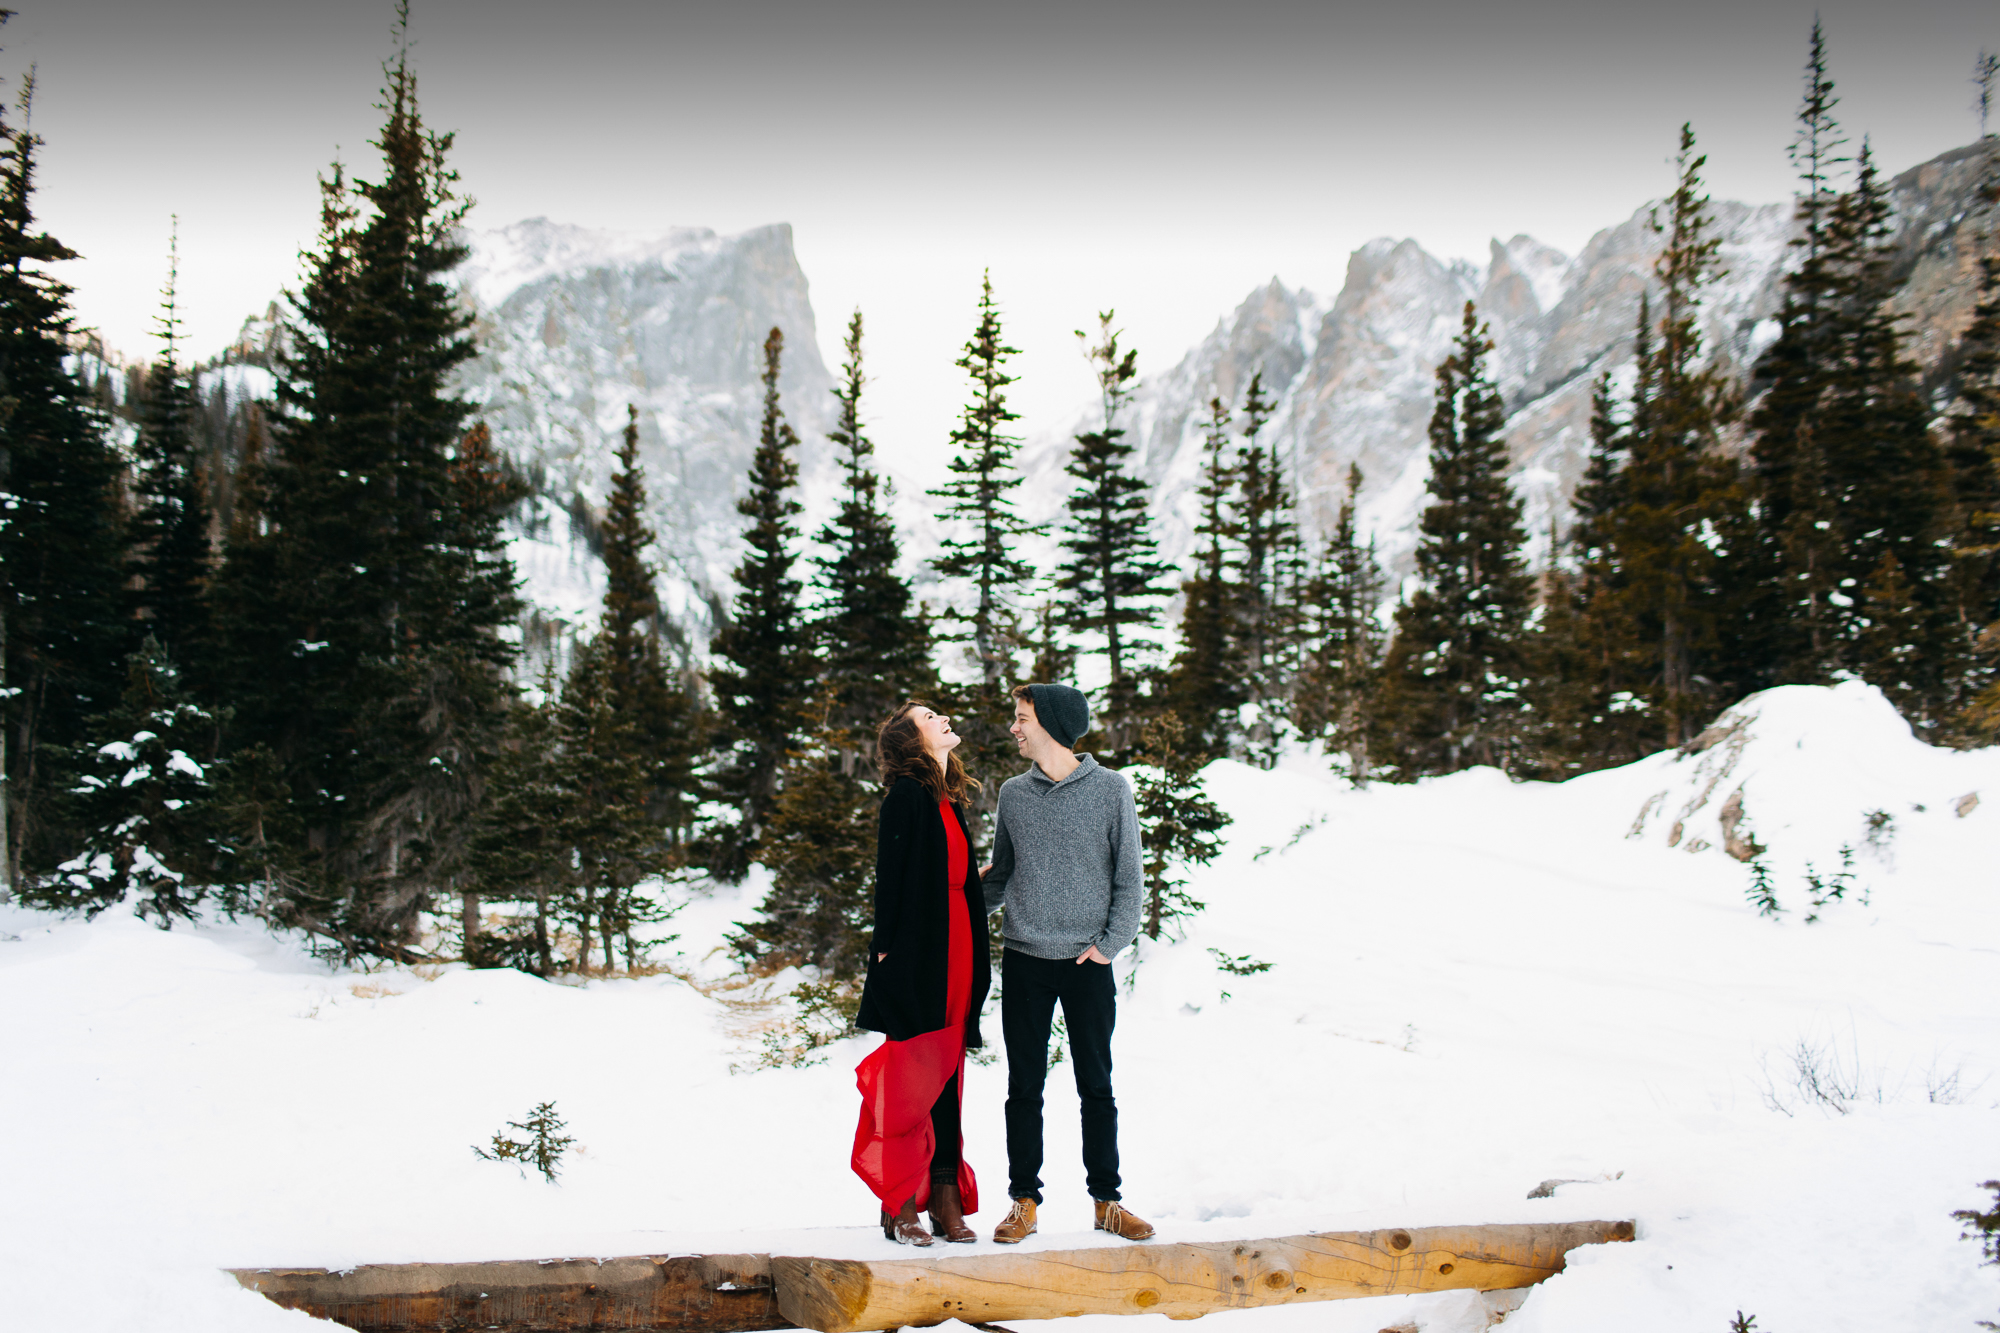 Colorado-Adventure-Mountain-Engagement-Photographer_08 copy.jpg